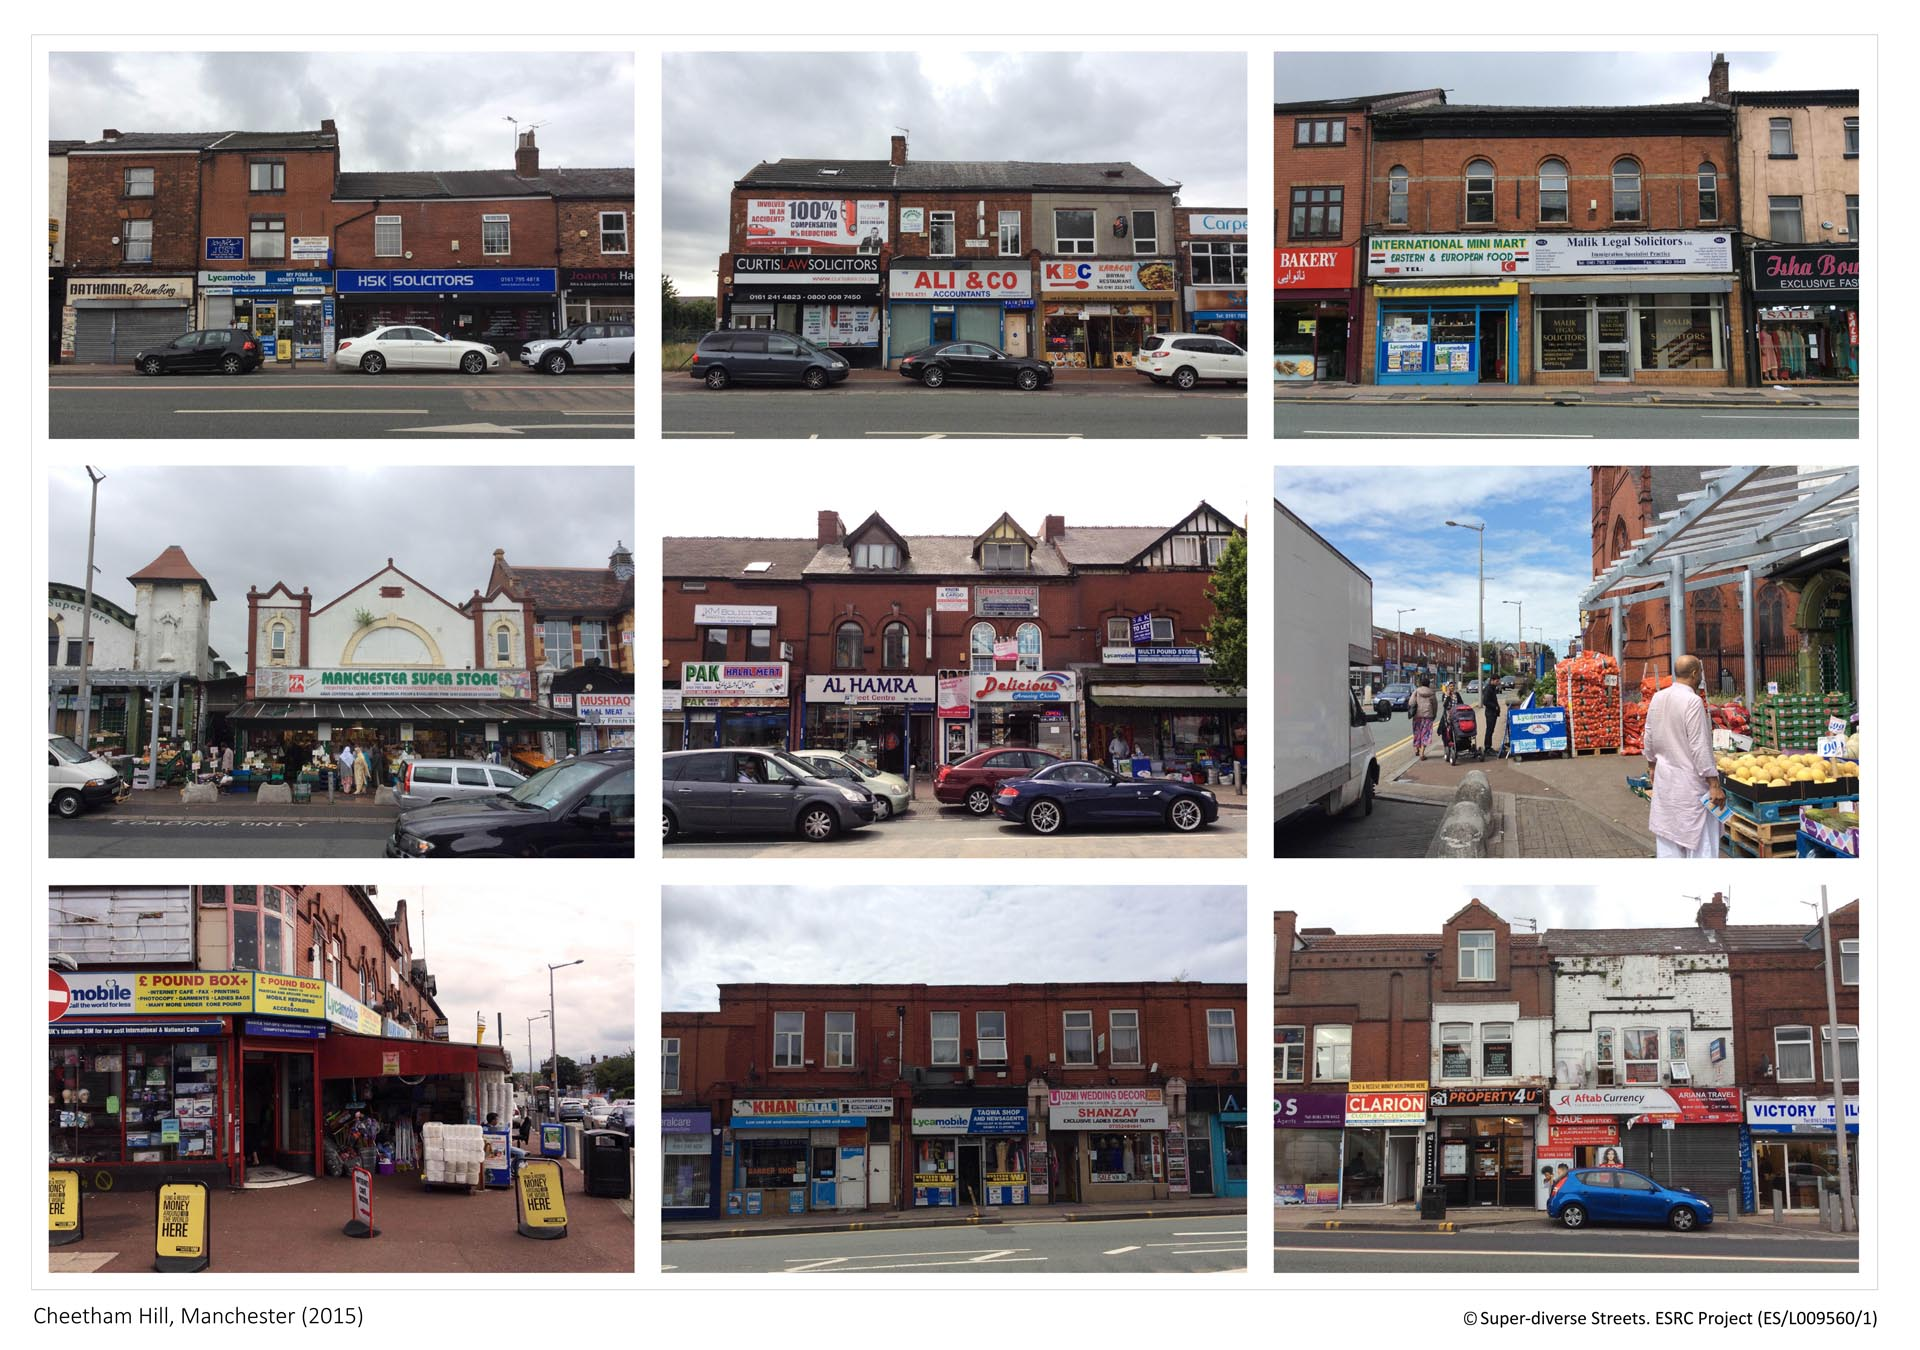 Cheetham Hill, Manchester - Streetscape